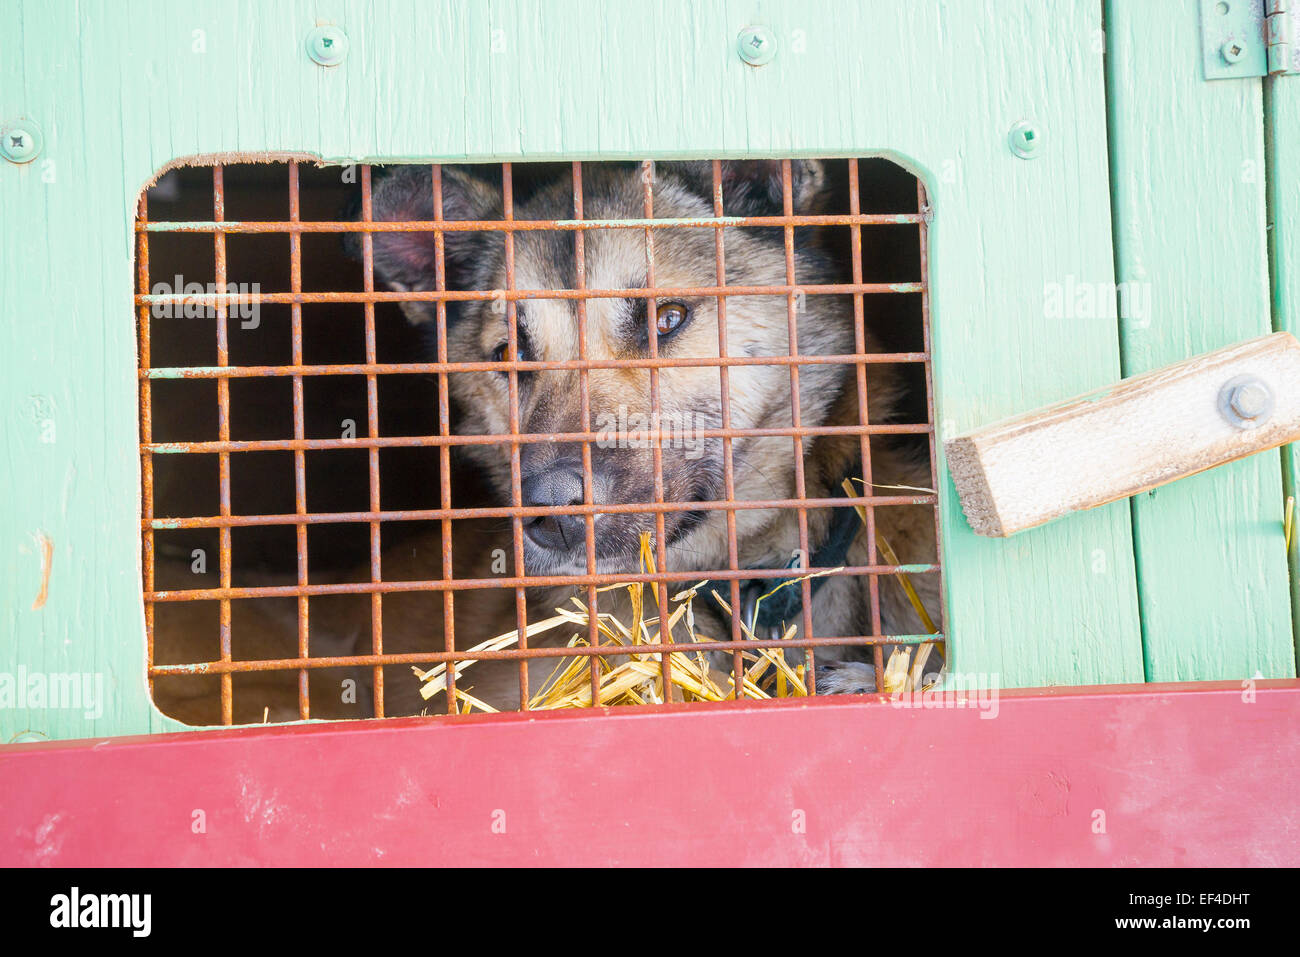 Sled dog in cage, Lake Louise, Banff National Park, Alberta, Canada - Stock Image